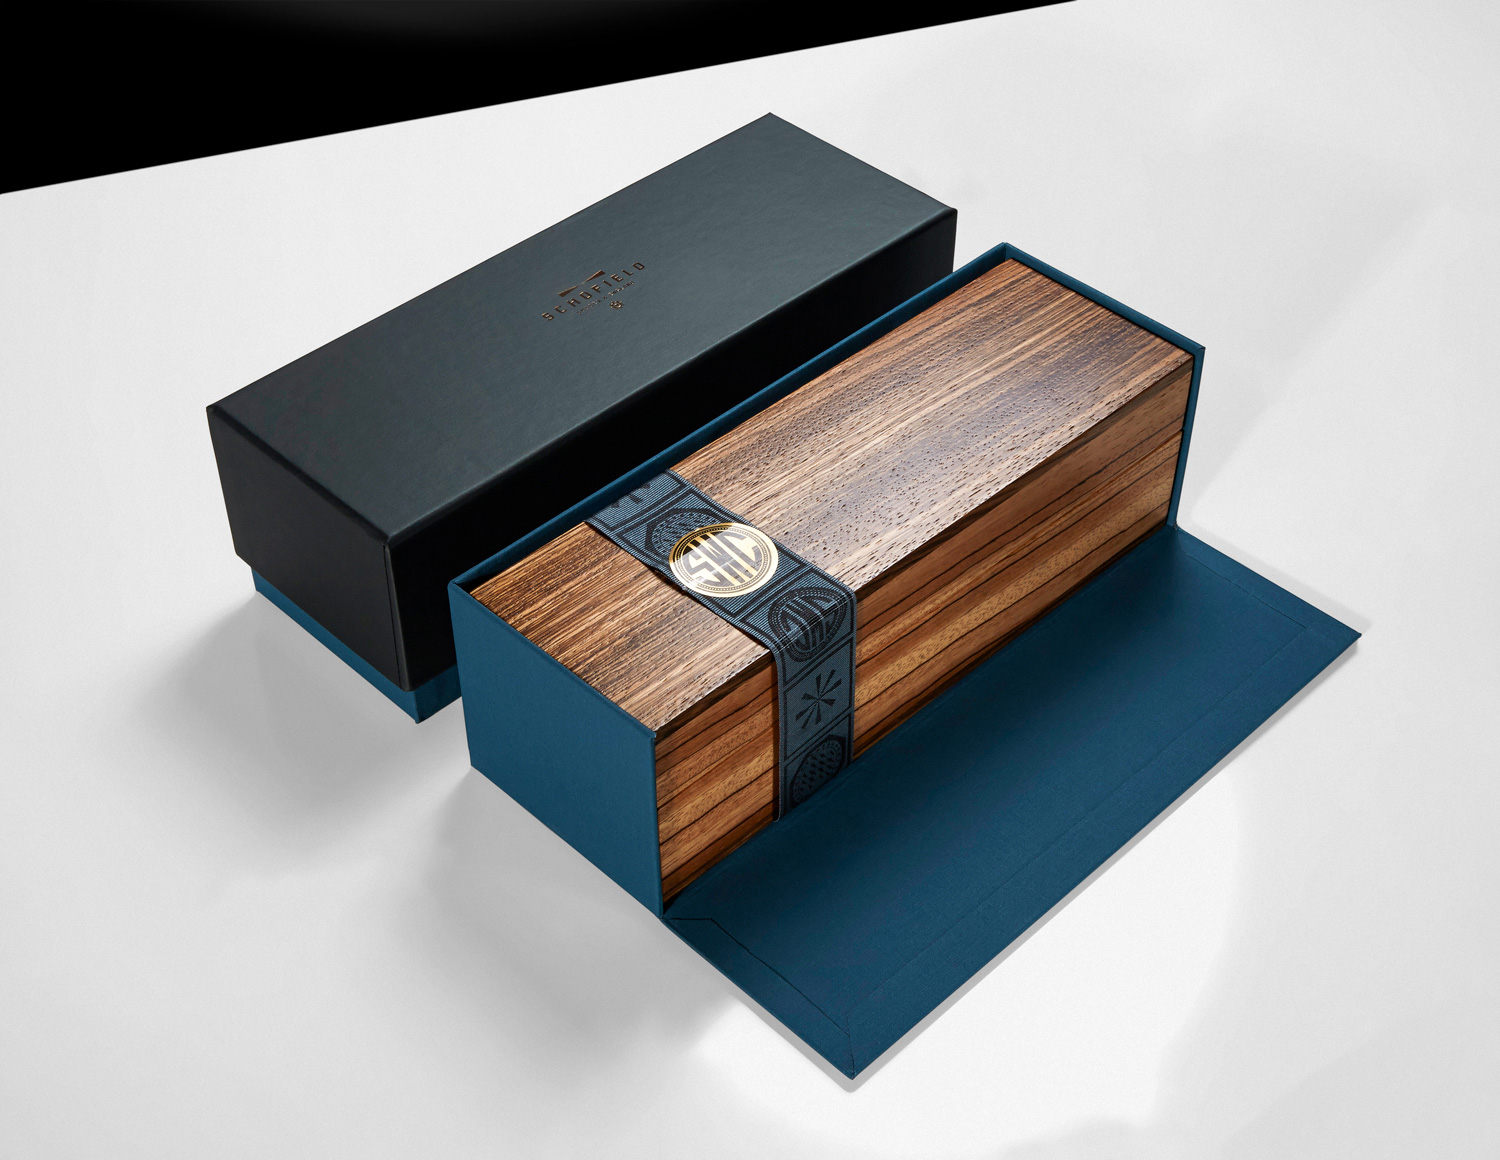 Progress Packaging Schofield Watches Luxury Boxes Wood Fashion Box Making Paper